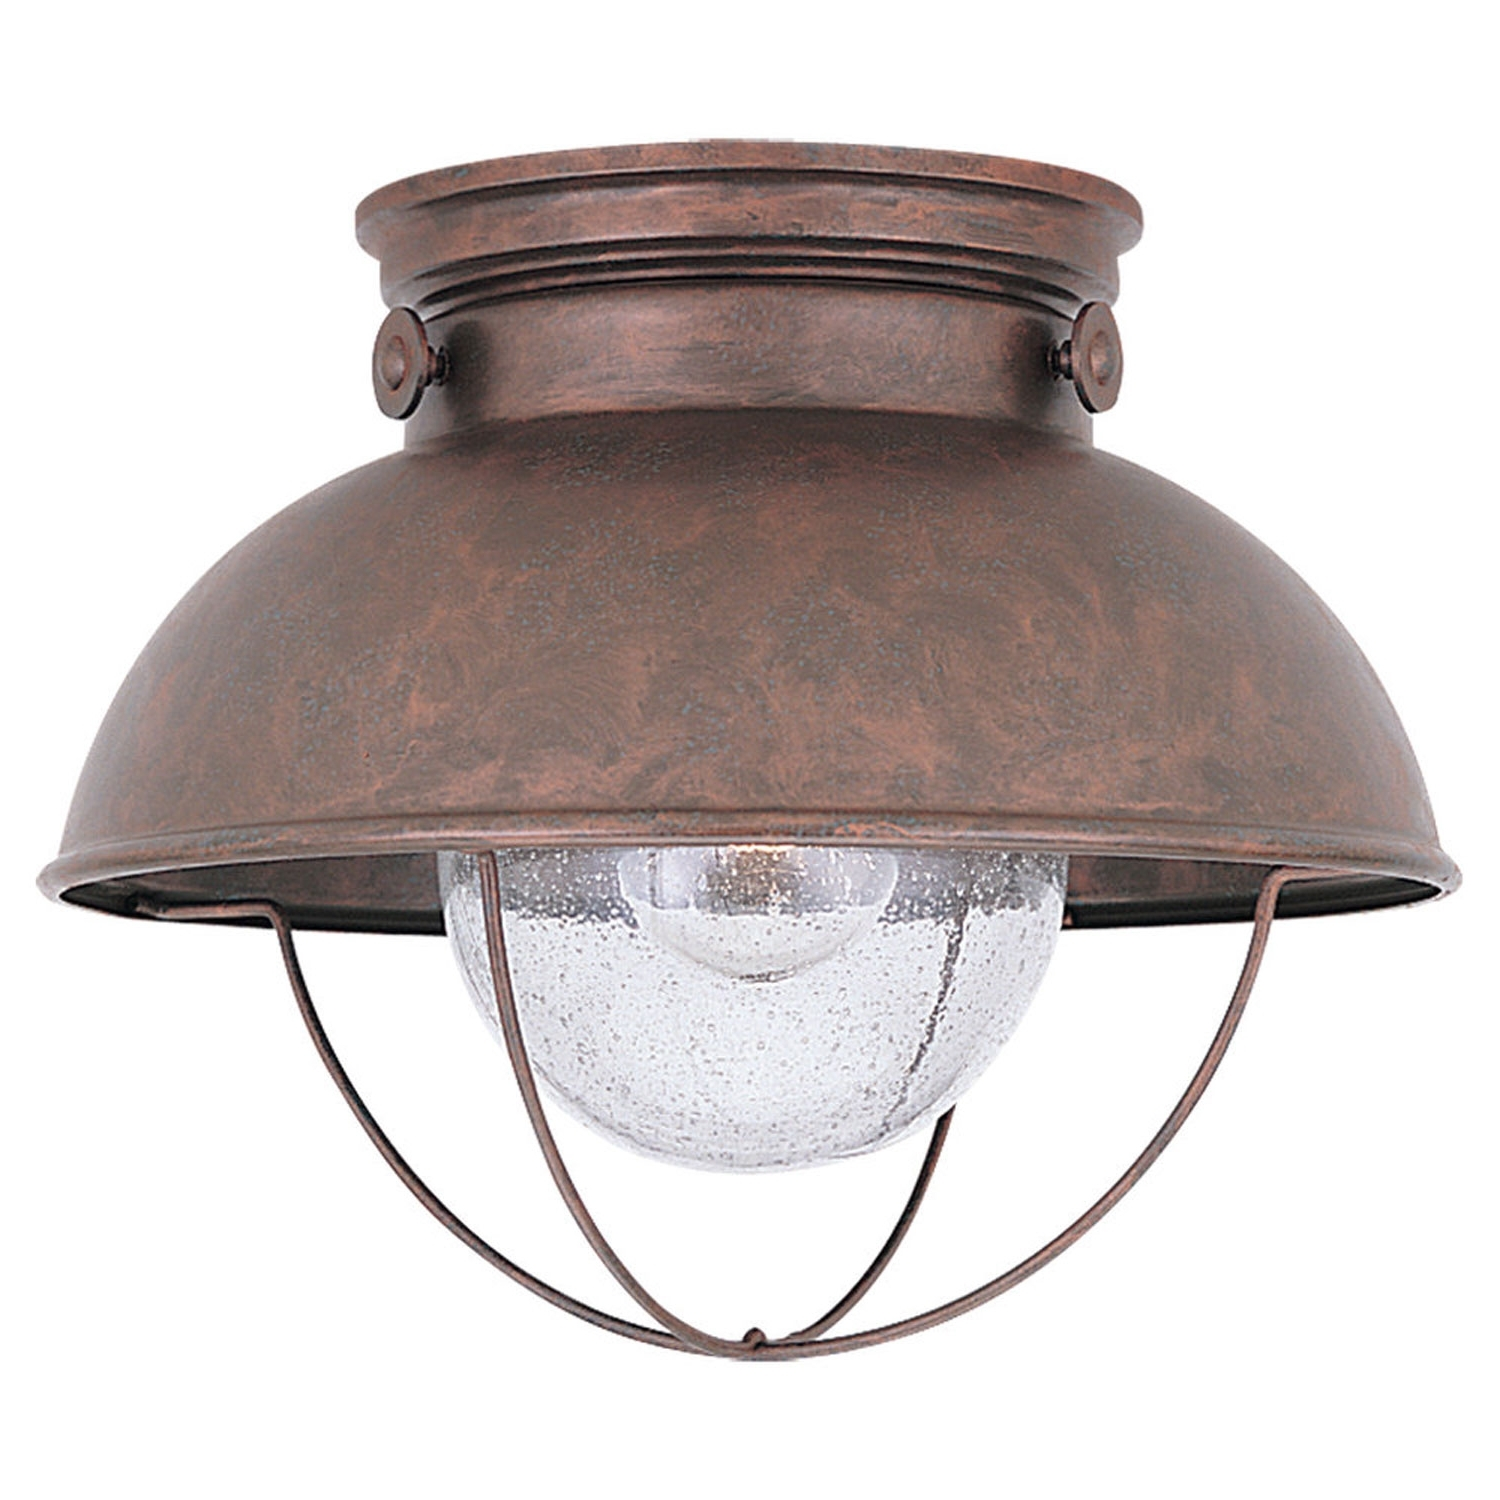 Outdoor Ceiling Lighting (View 18 of 20)